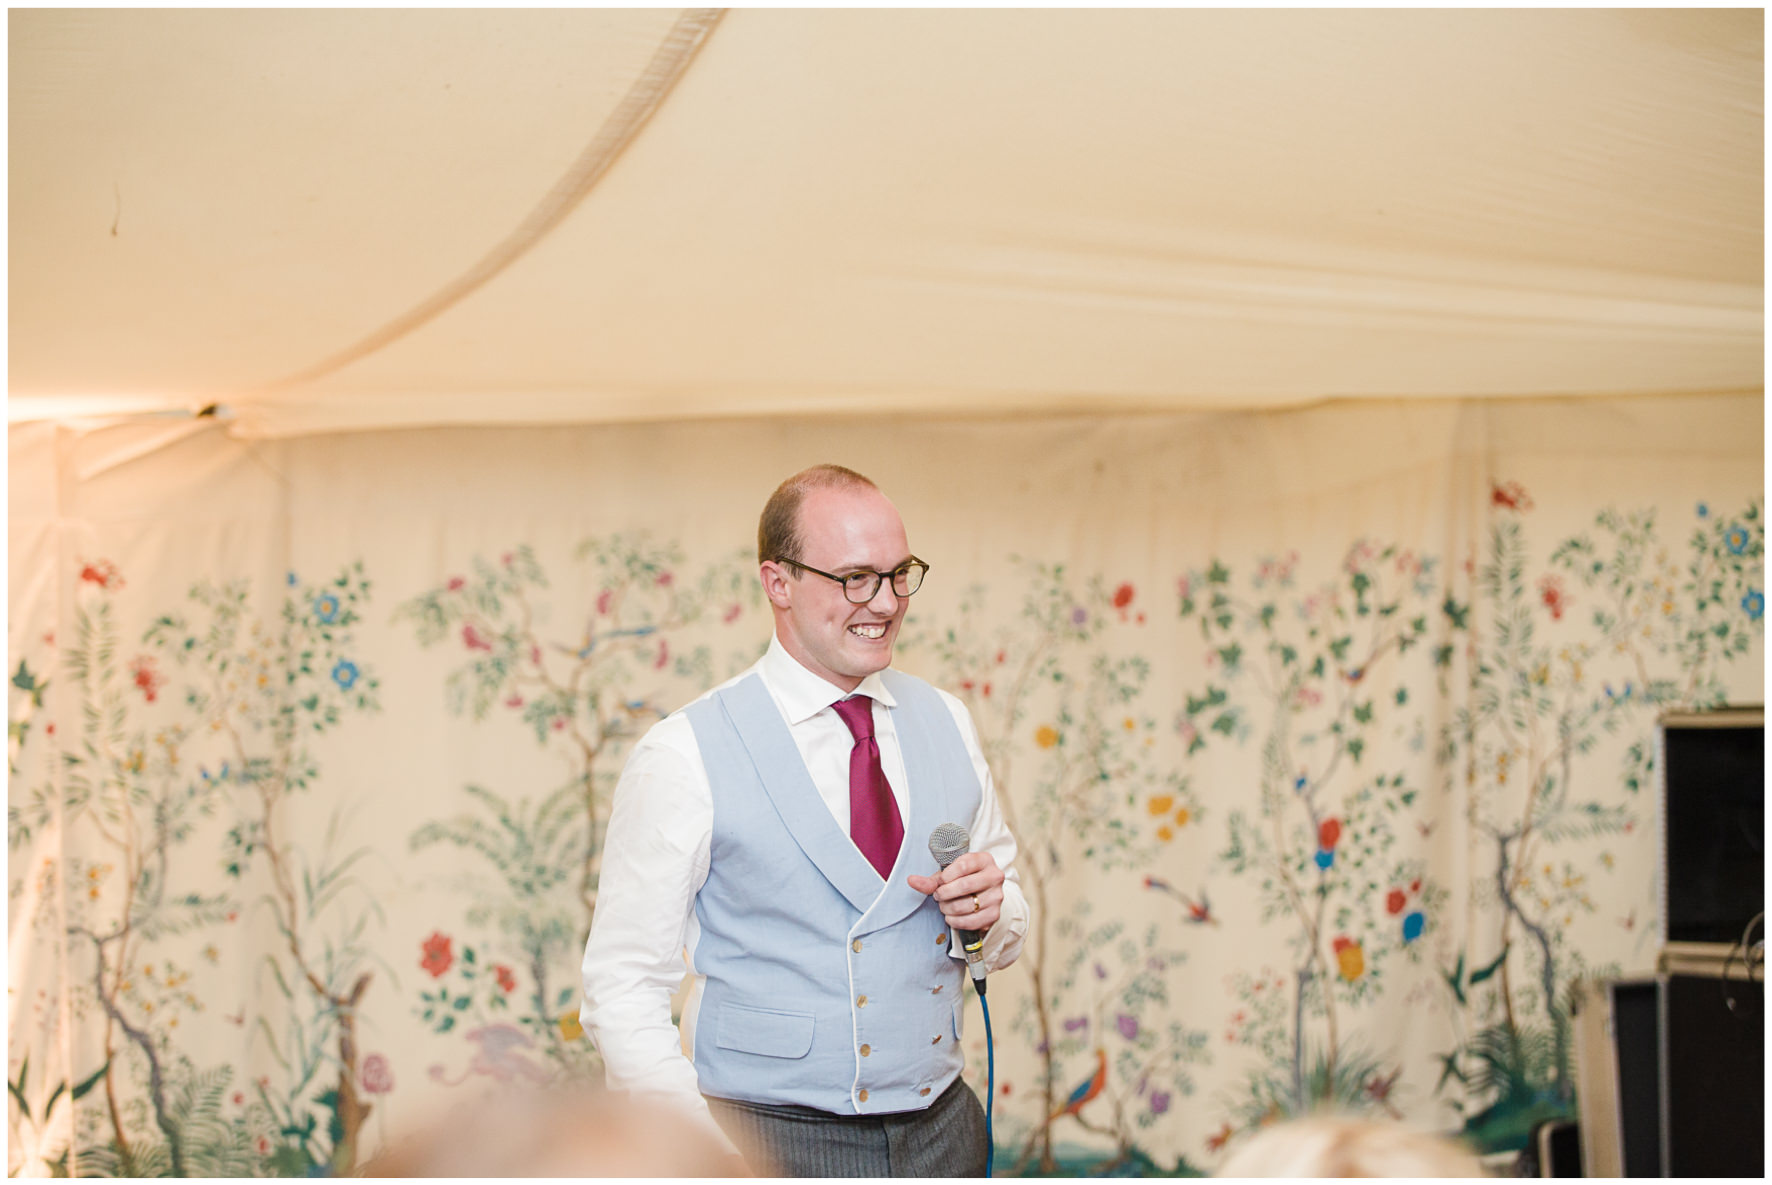 Lucy Davenport Photography, Cornwell Manor, wedding venue, Oxfordshire, Cotswold wedding, marquee wedding, marquee, wedding breakfast, speeches, groom